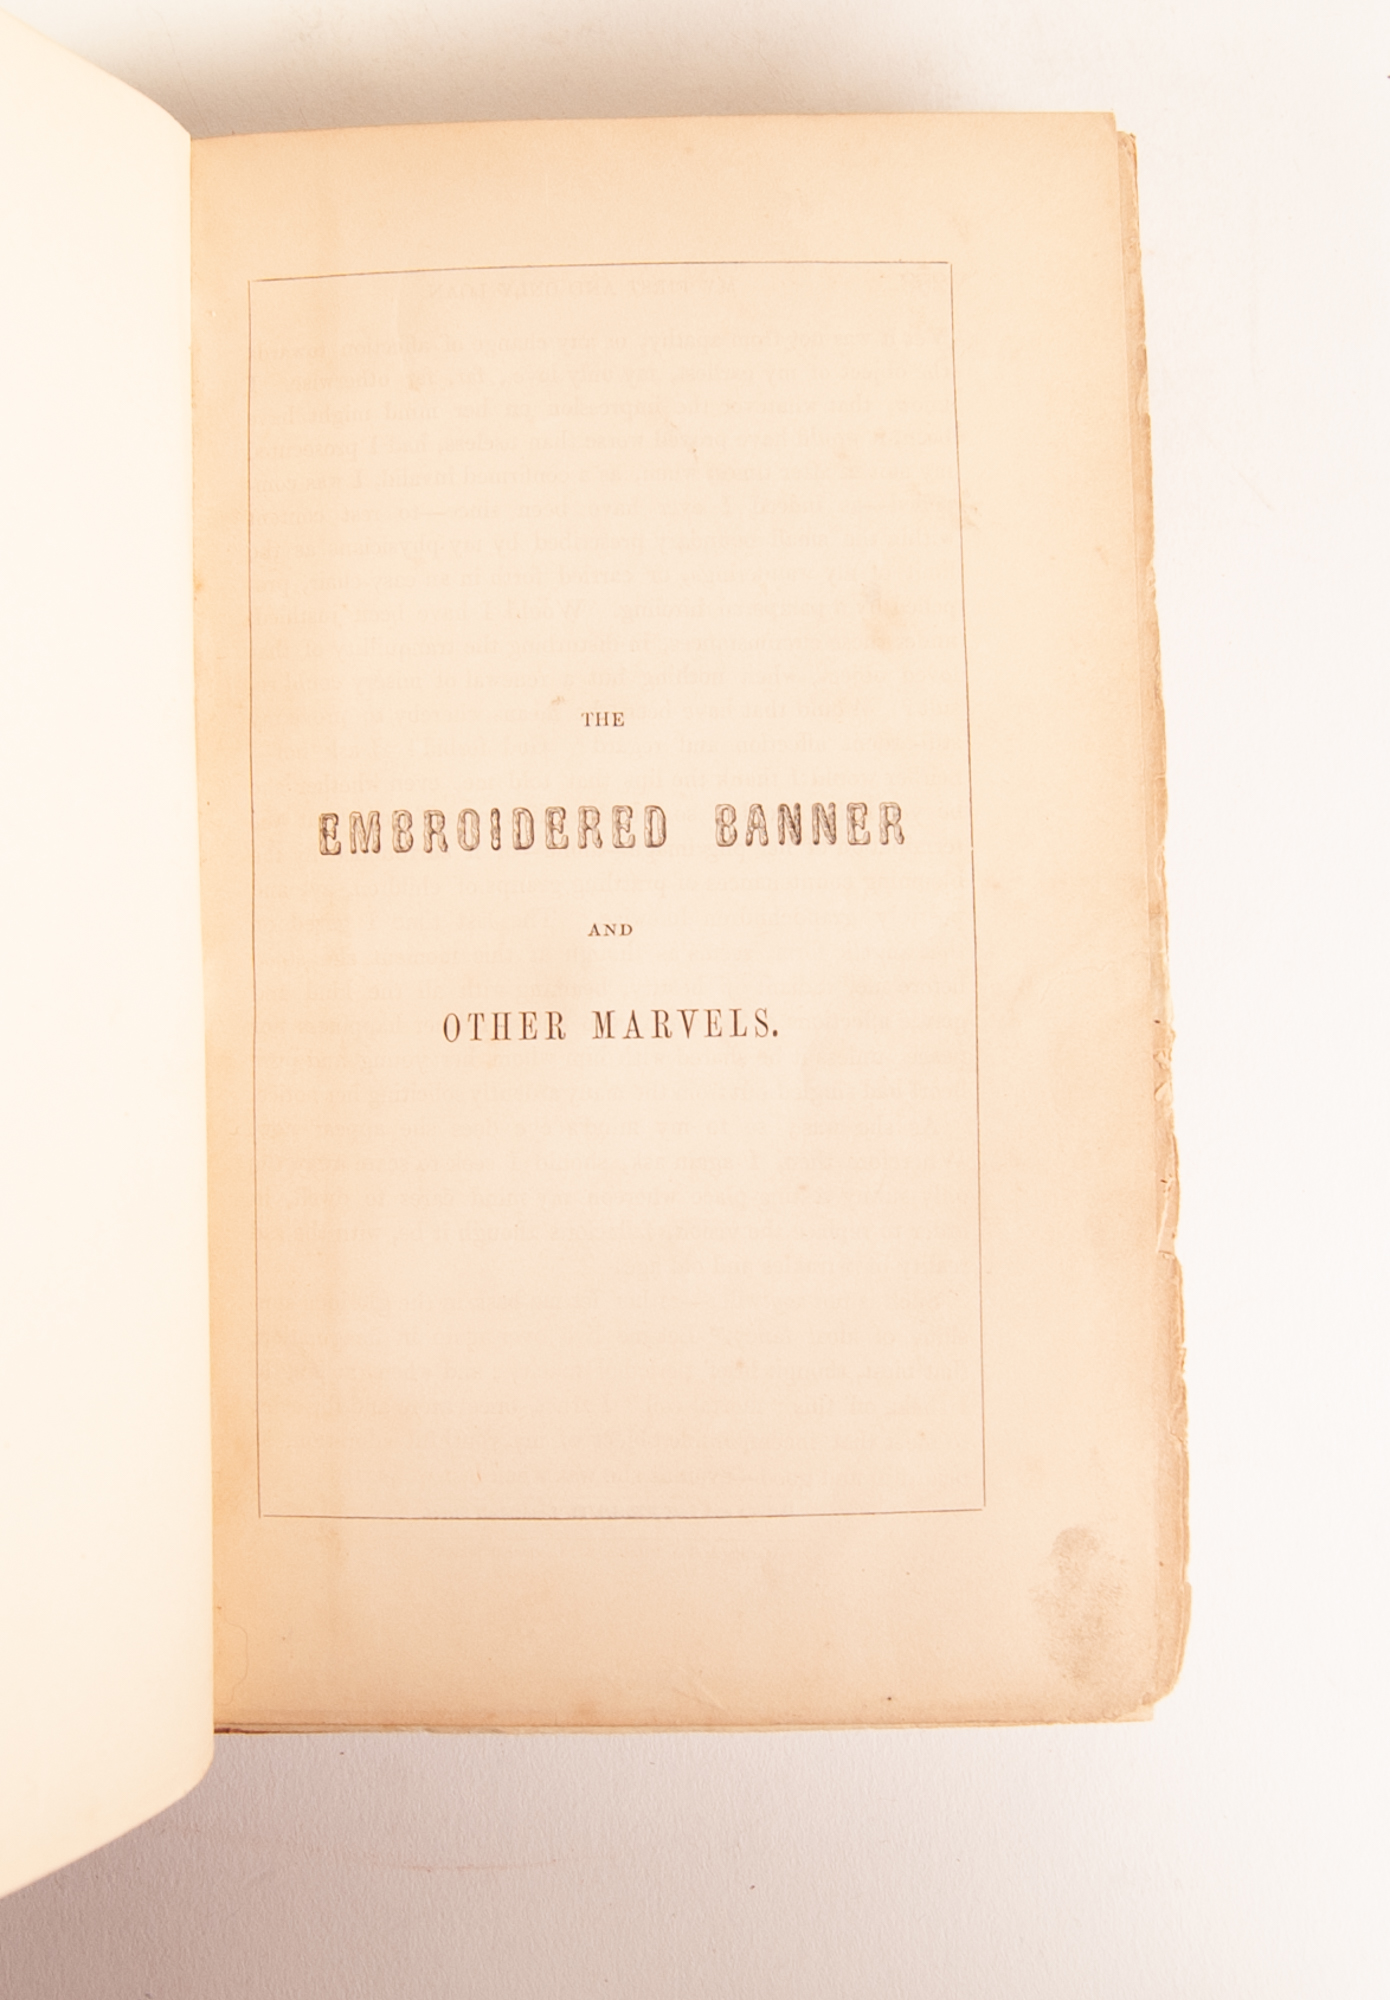 Lot 128 - LIEUTENANT COLONEL HART. The Embroidered Banner and other Marvels. Published by John and Daniel A